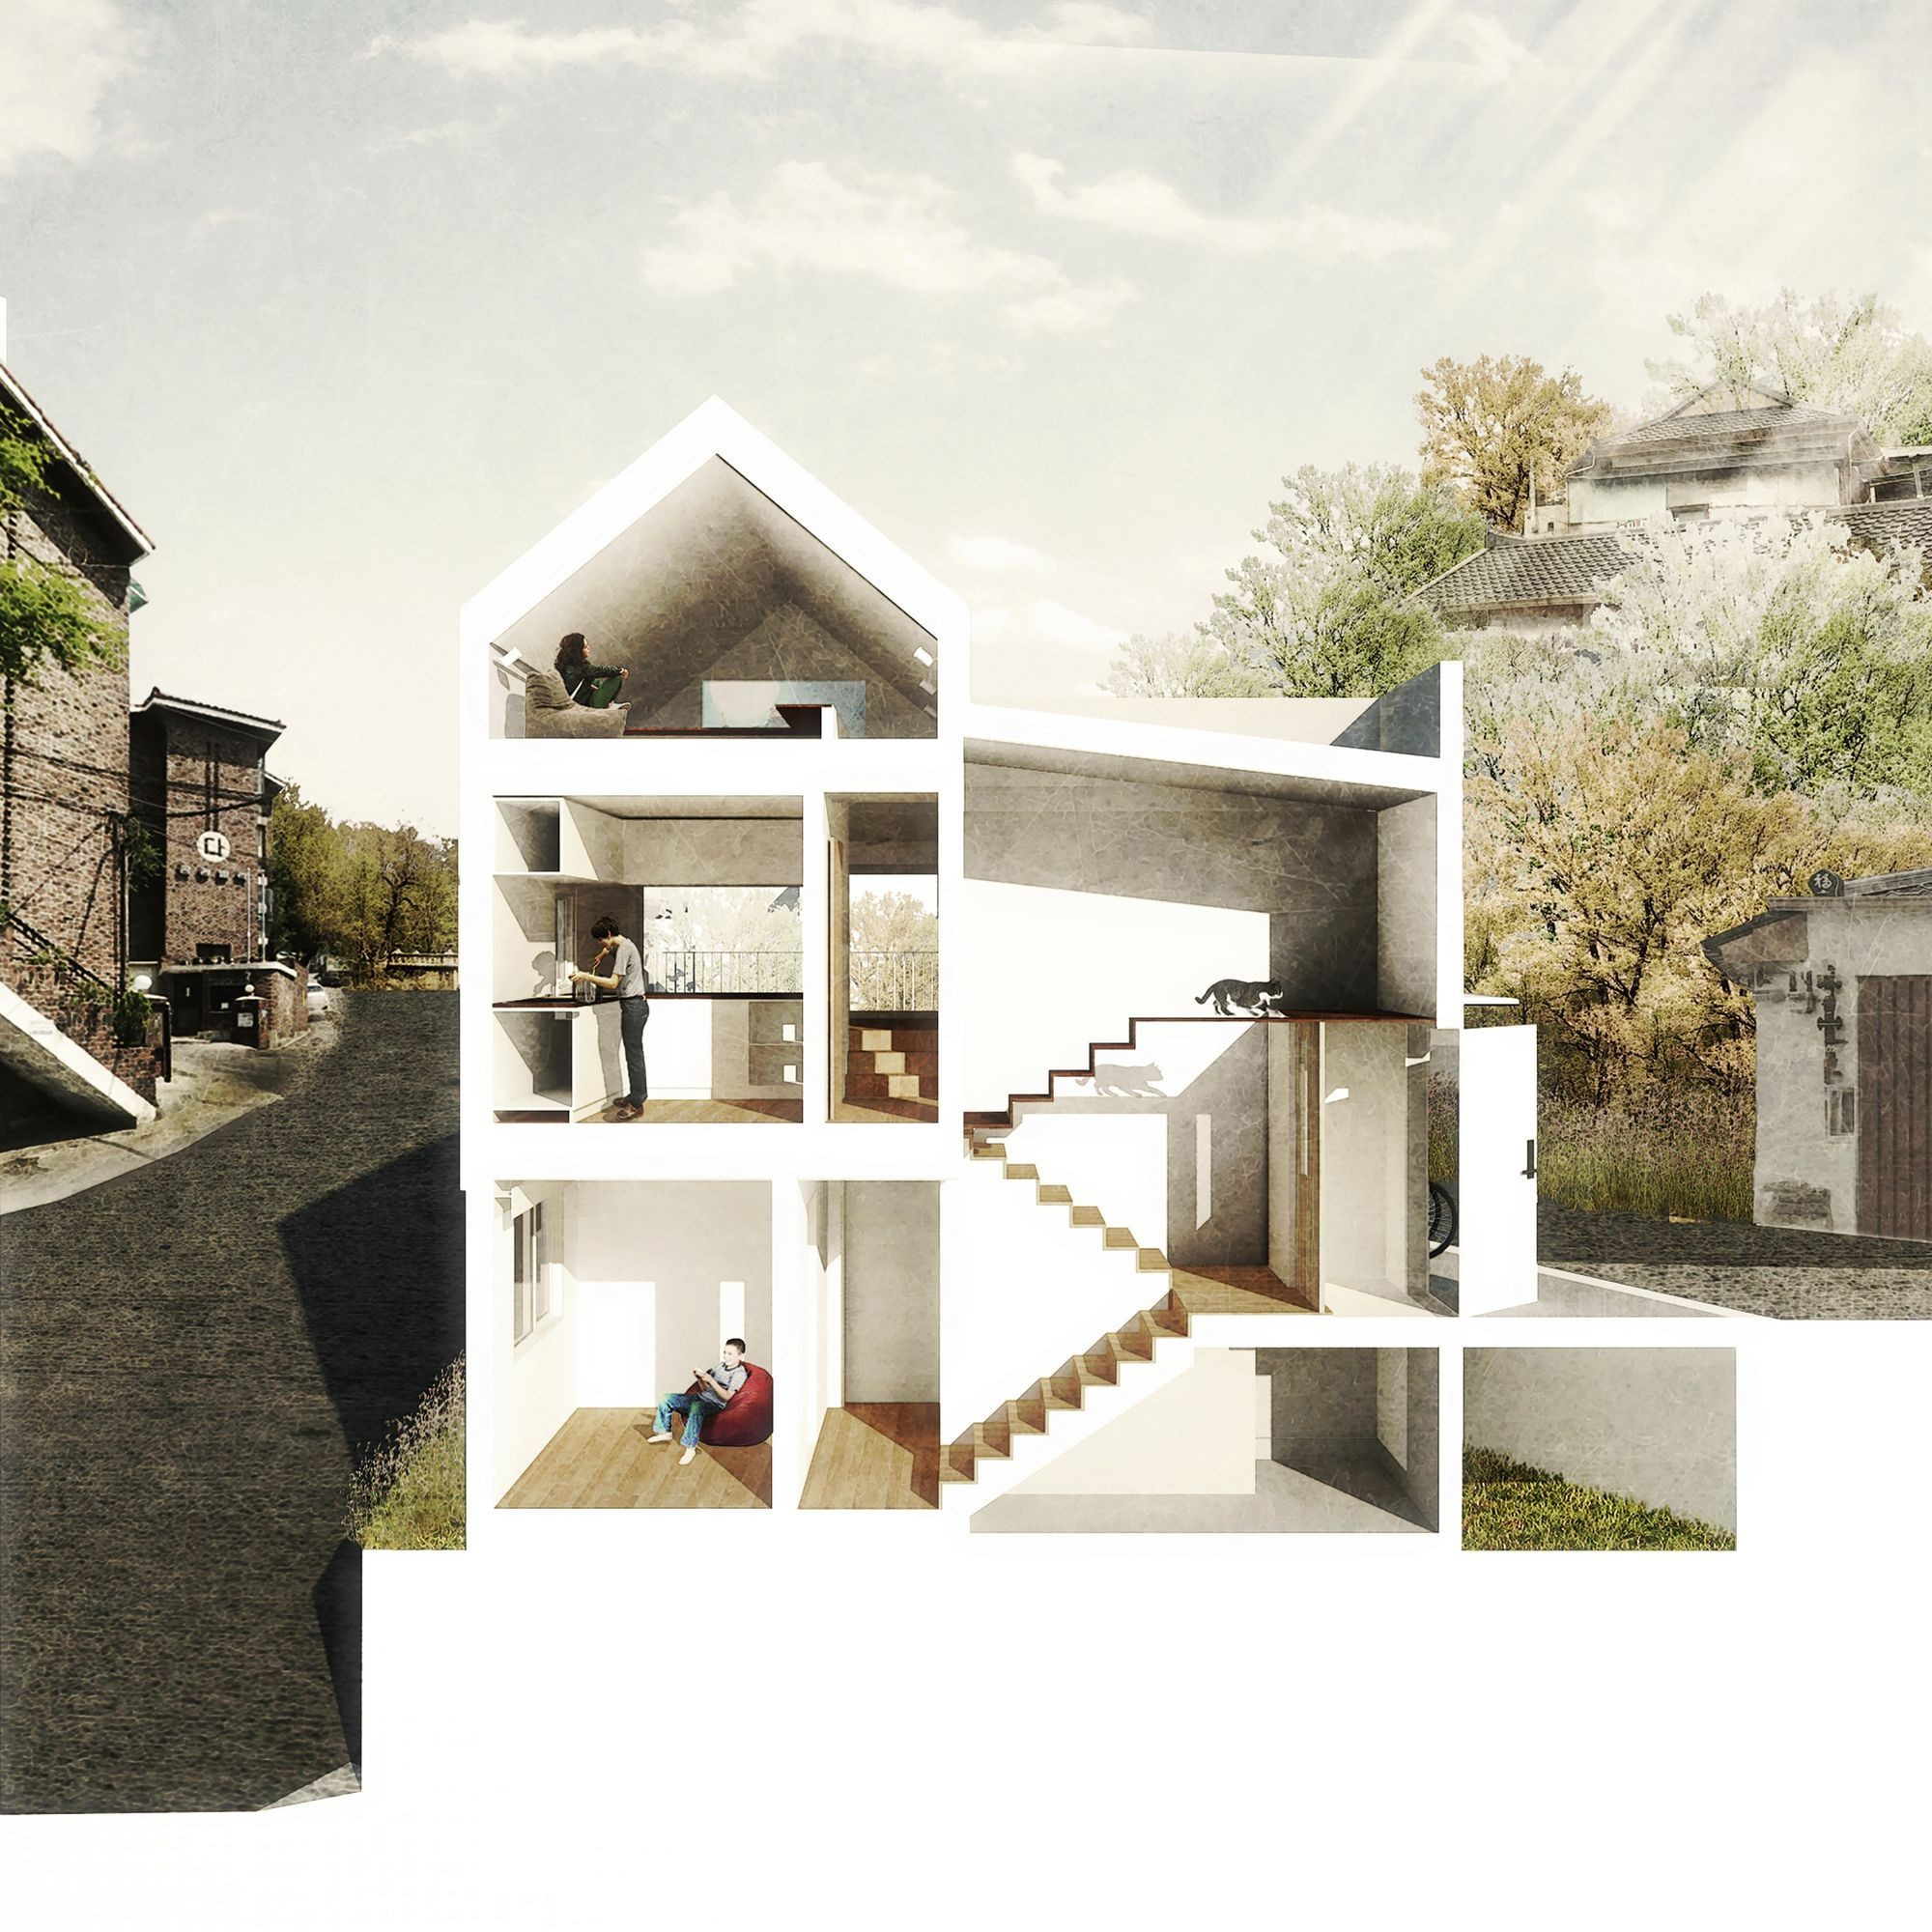 50m2 House A Newlyweds Small Home In Seoul By Obba